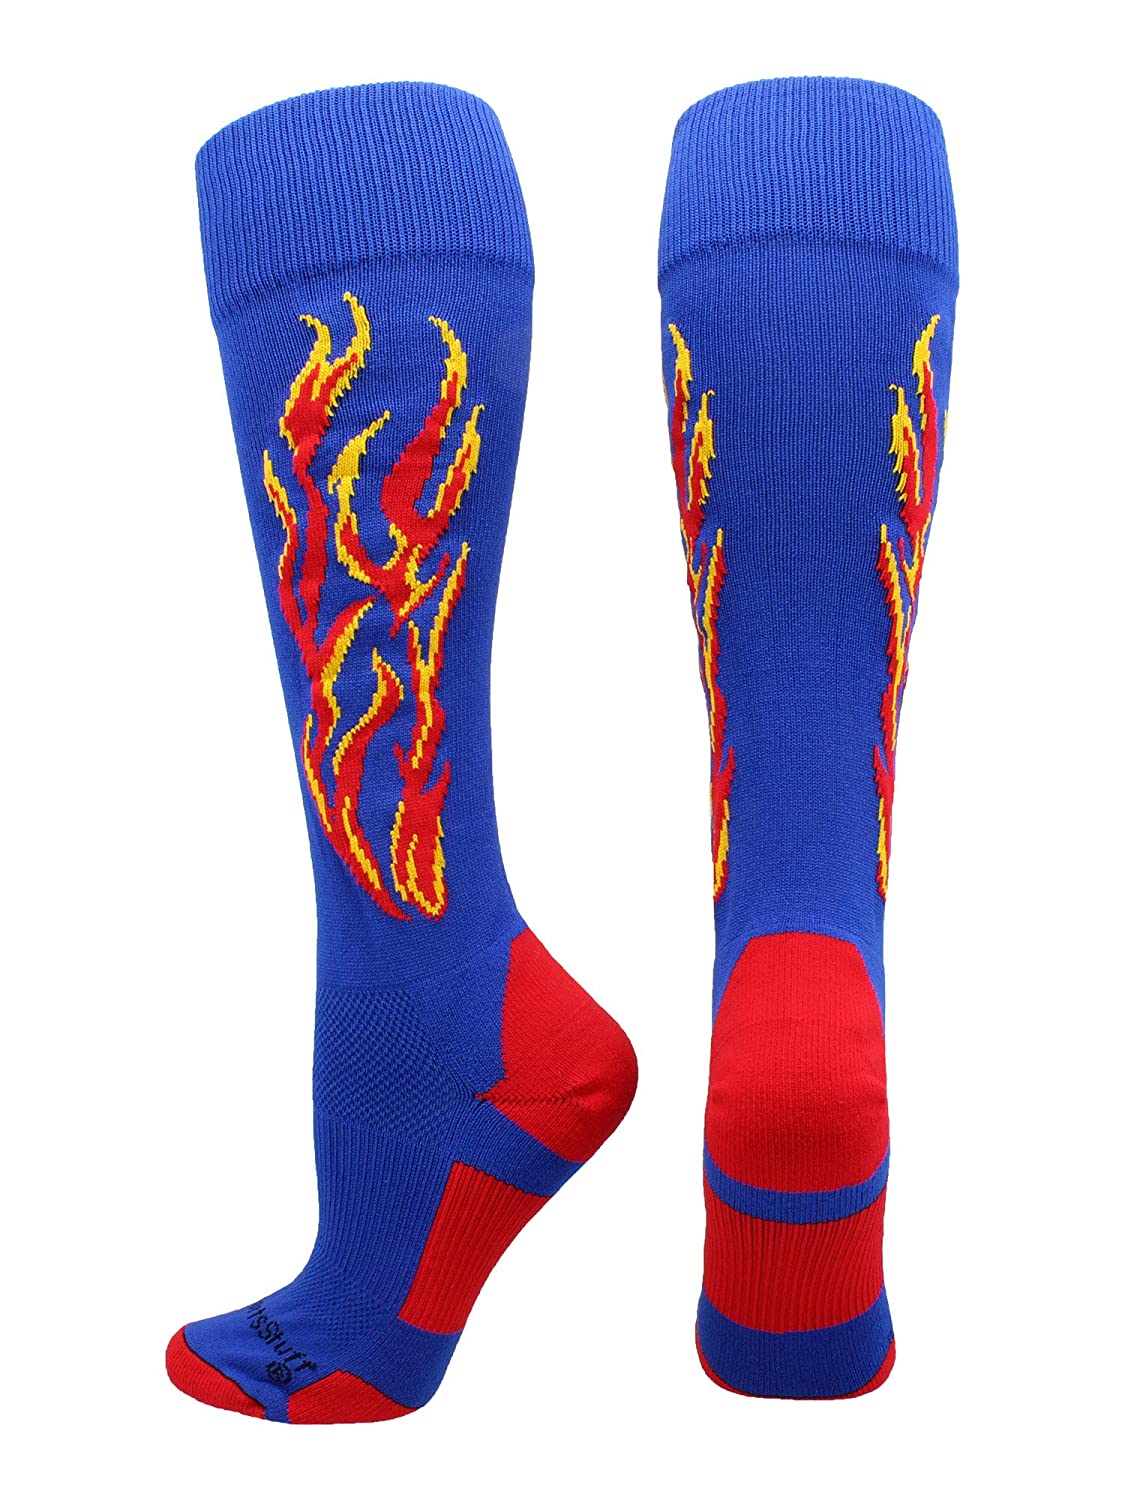 MadSportsStuff Flame Soccer Style Over The Calf Athletic Socks (Multiple Colors)